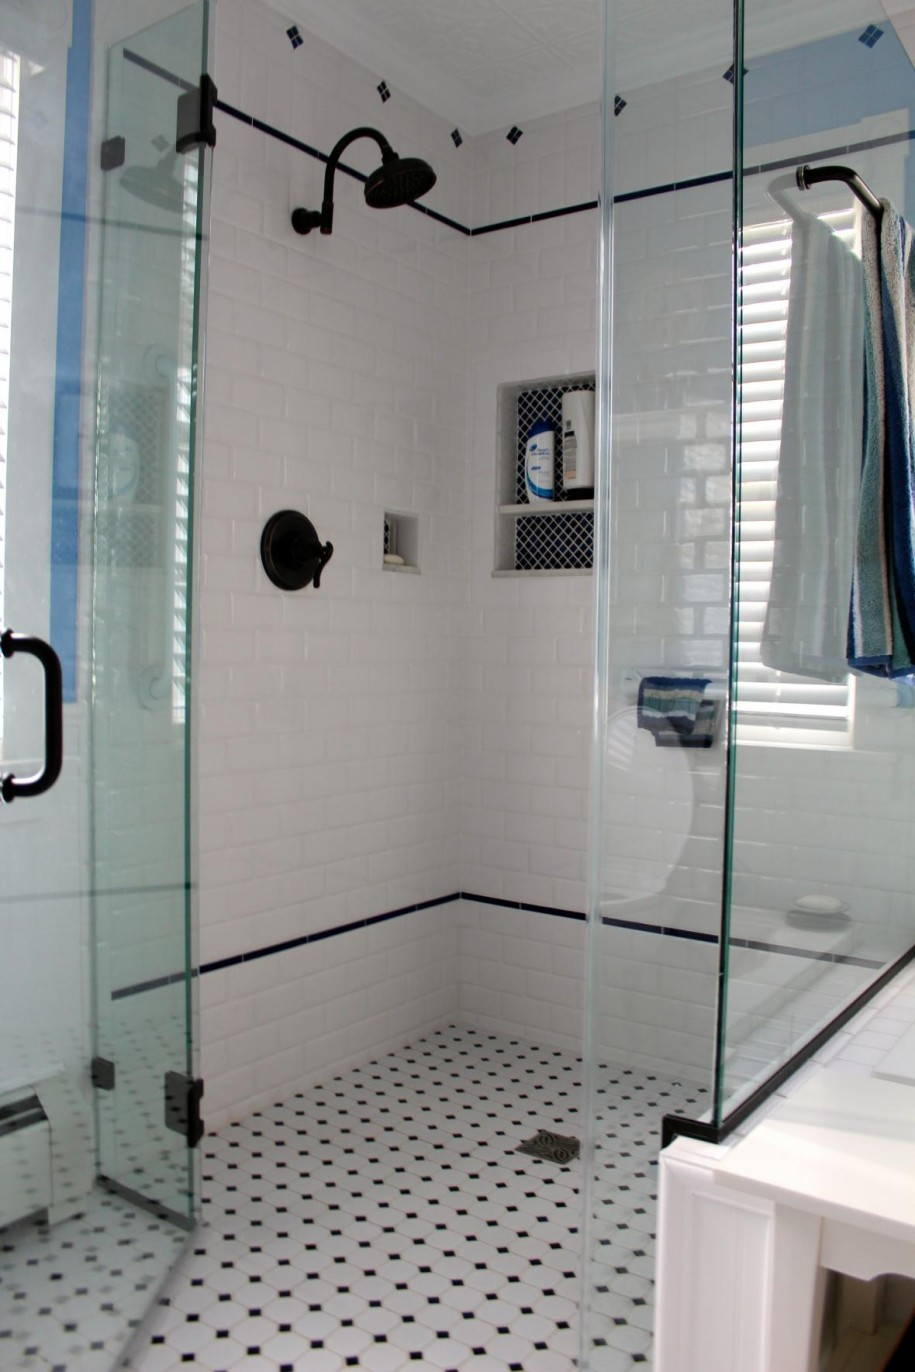 bathroom-exciting-bathroom-decorating-design-ideas-with-square-white-tile-bathroom-wall-including-black-and-white-tile-bathroom-floor-and-black-metal-shower-head-adorable-vintage-bathroom-tile-p